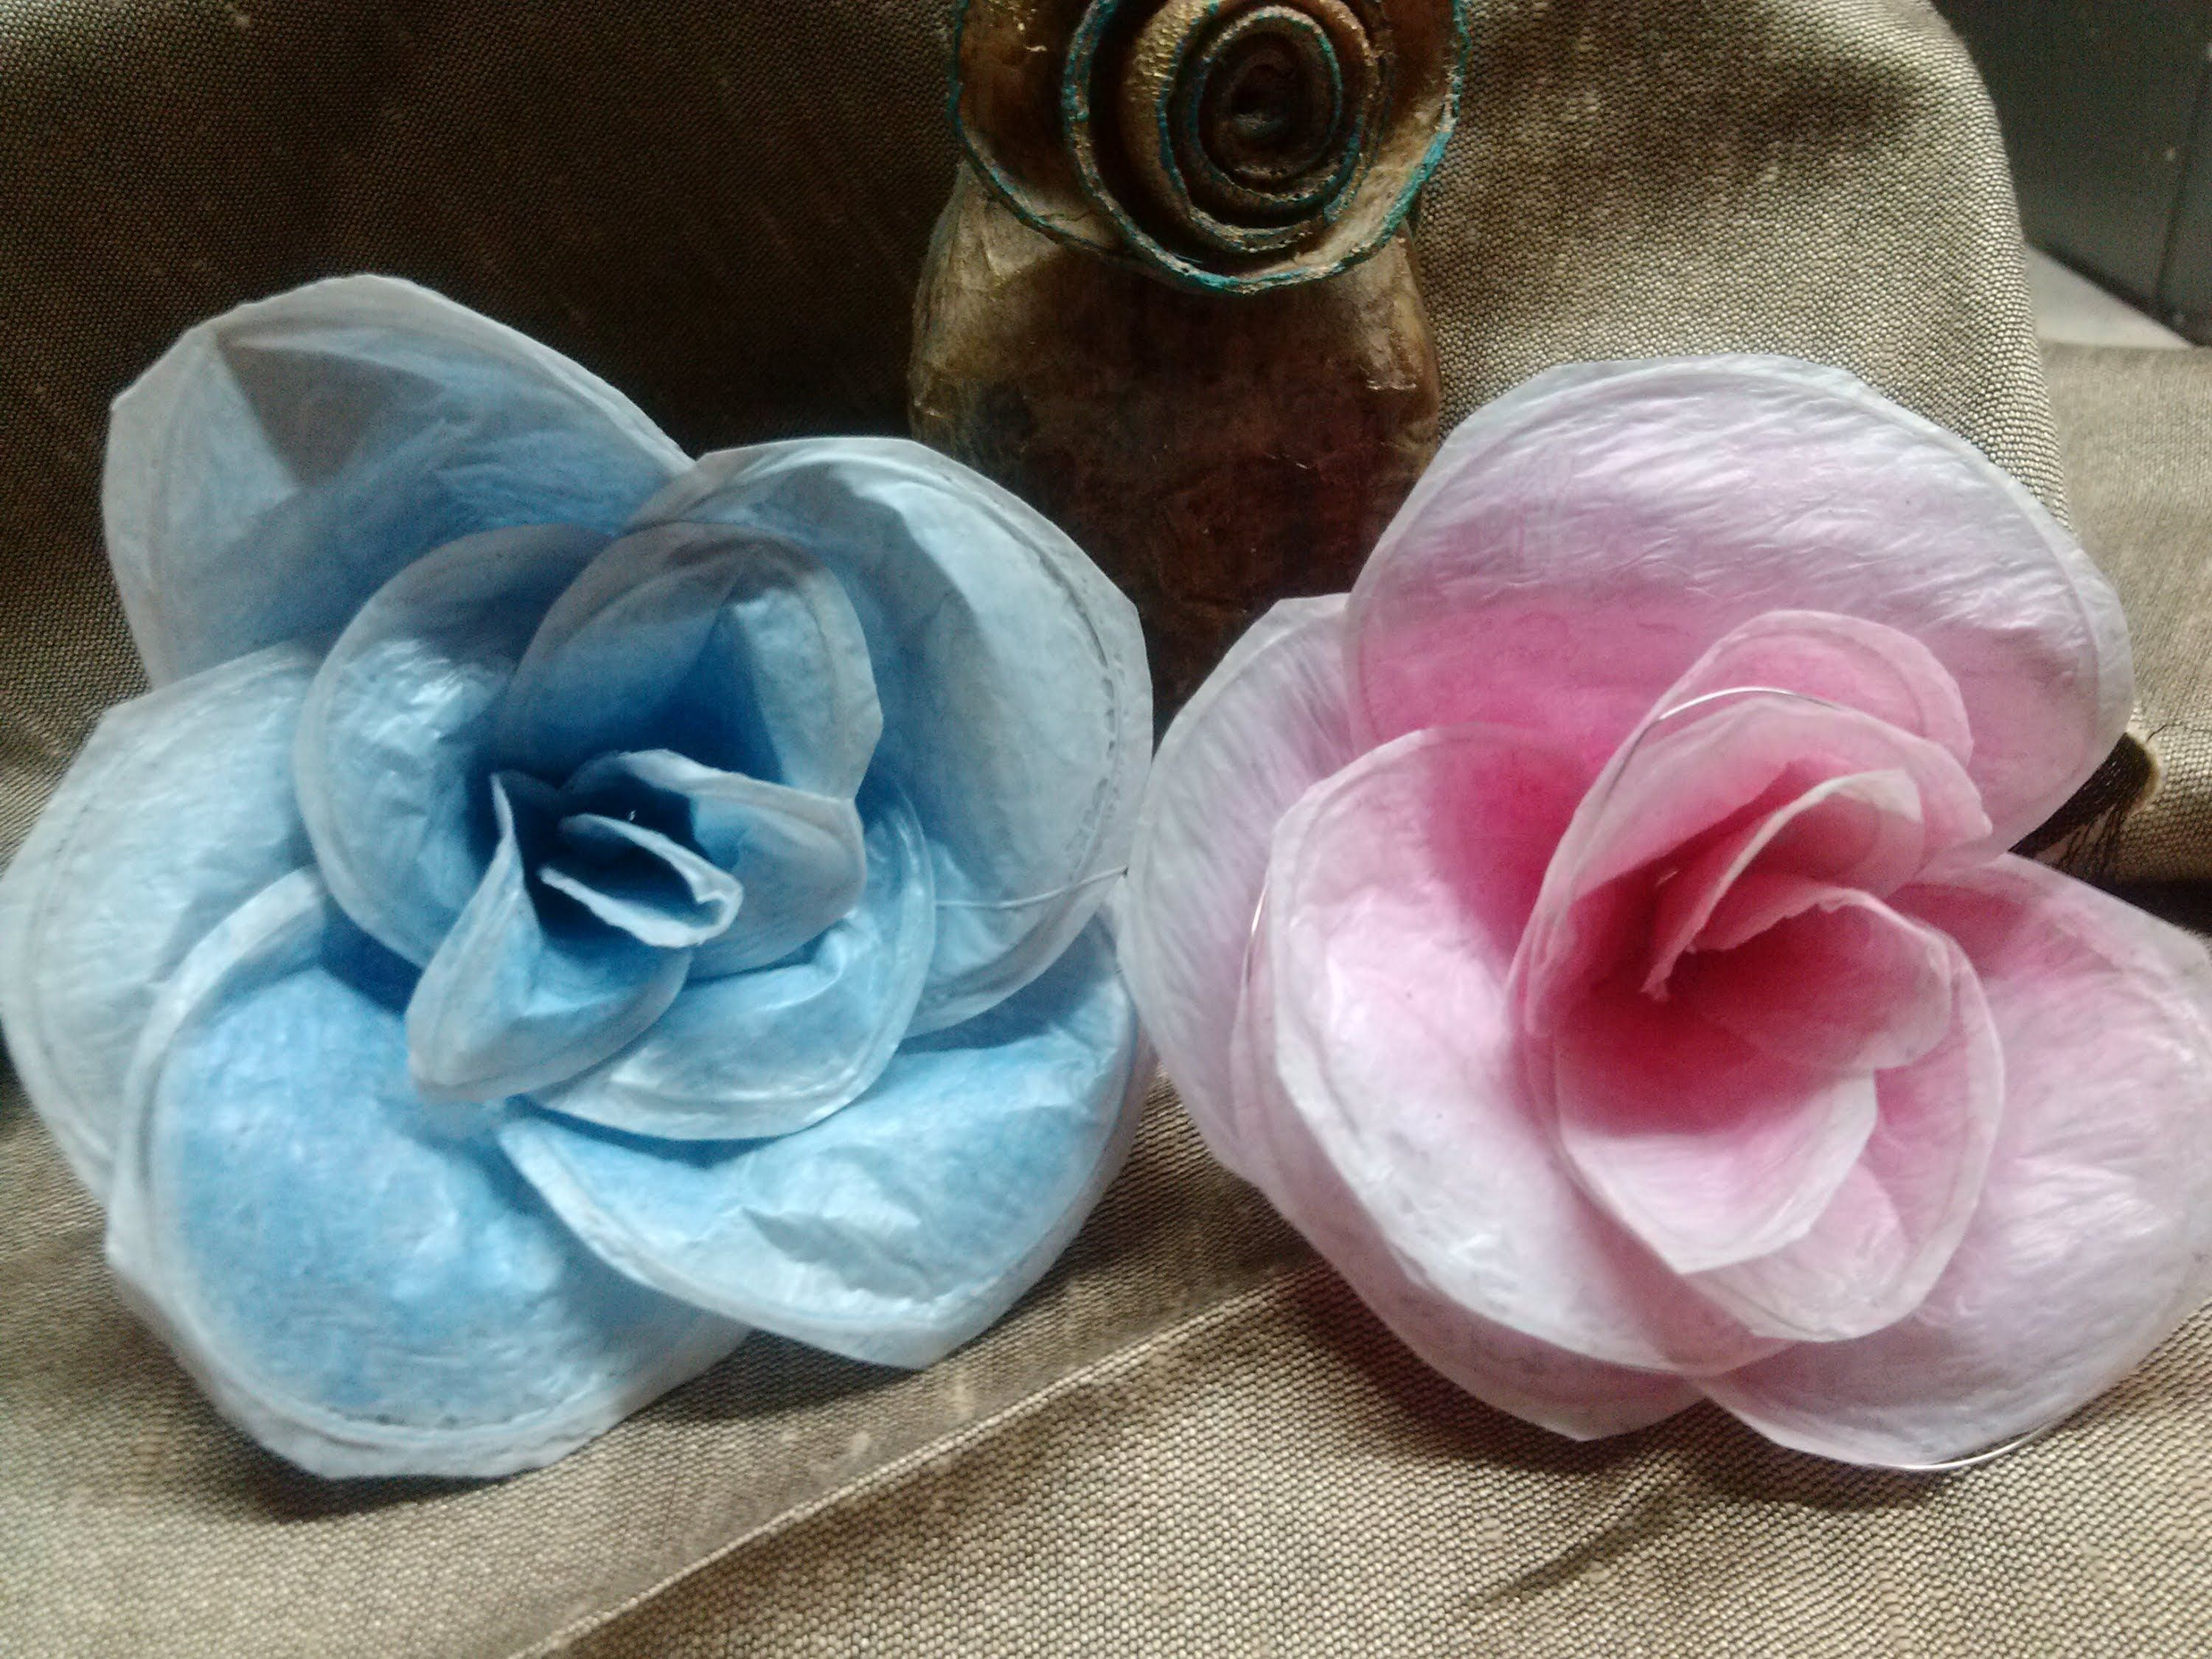 Diy how to make flowers from plastic bags flores con - Manualidades con bolsas de plastico ...